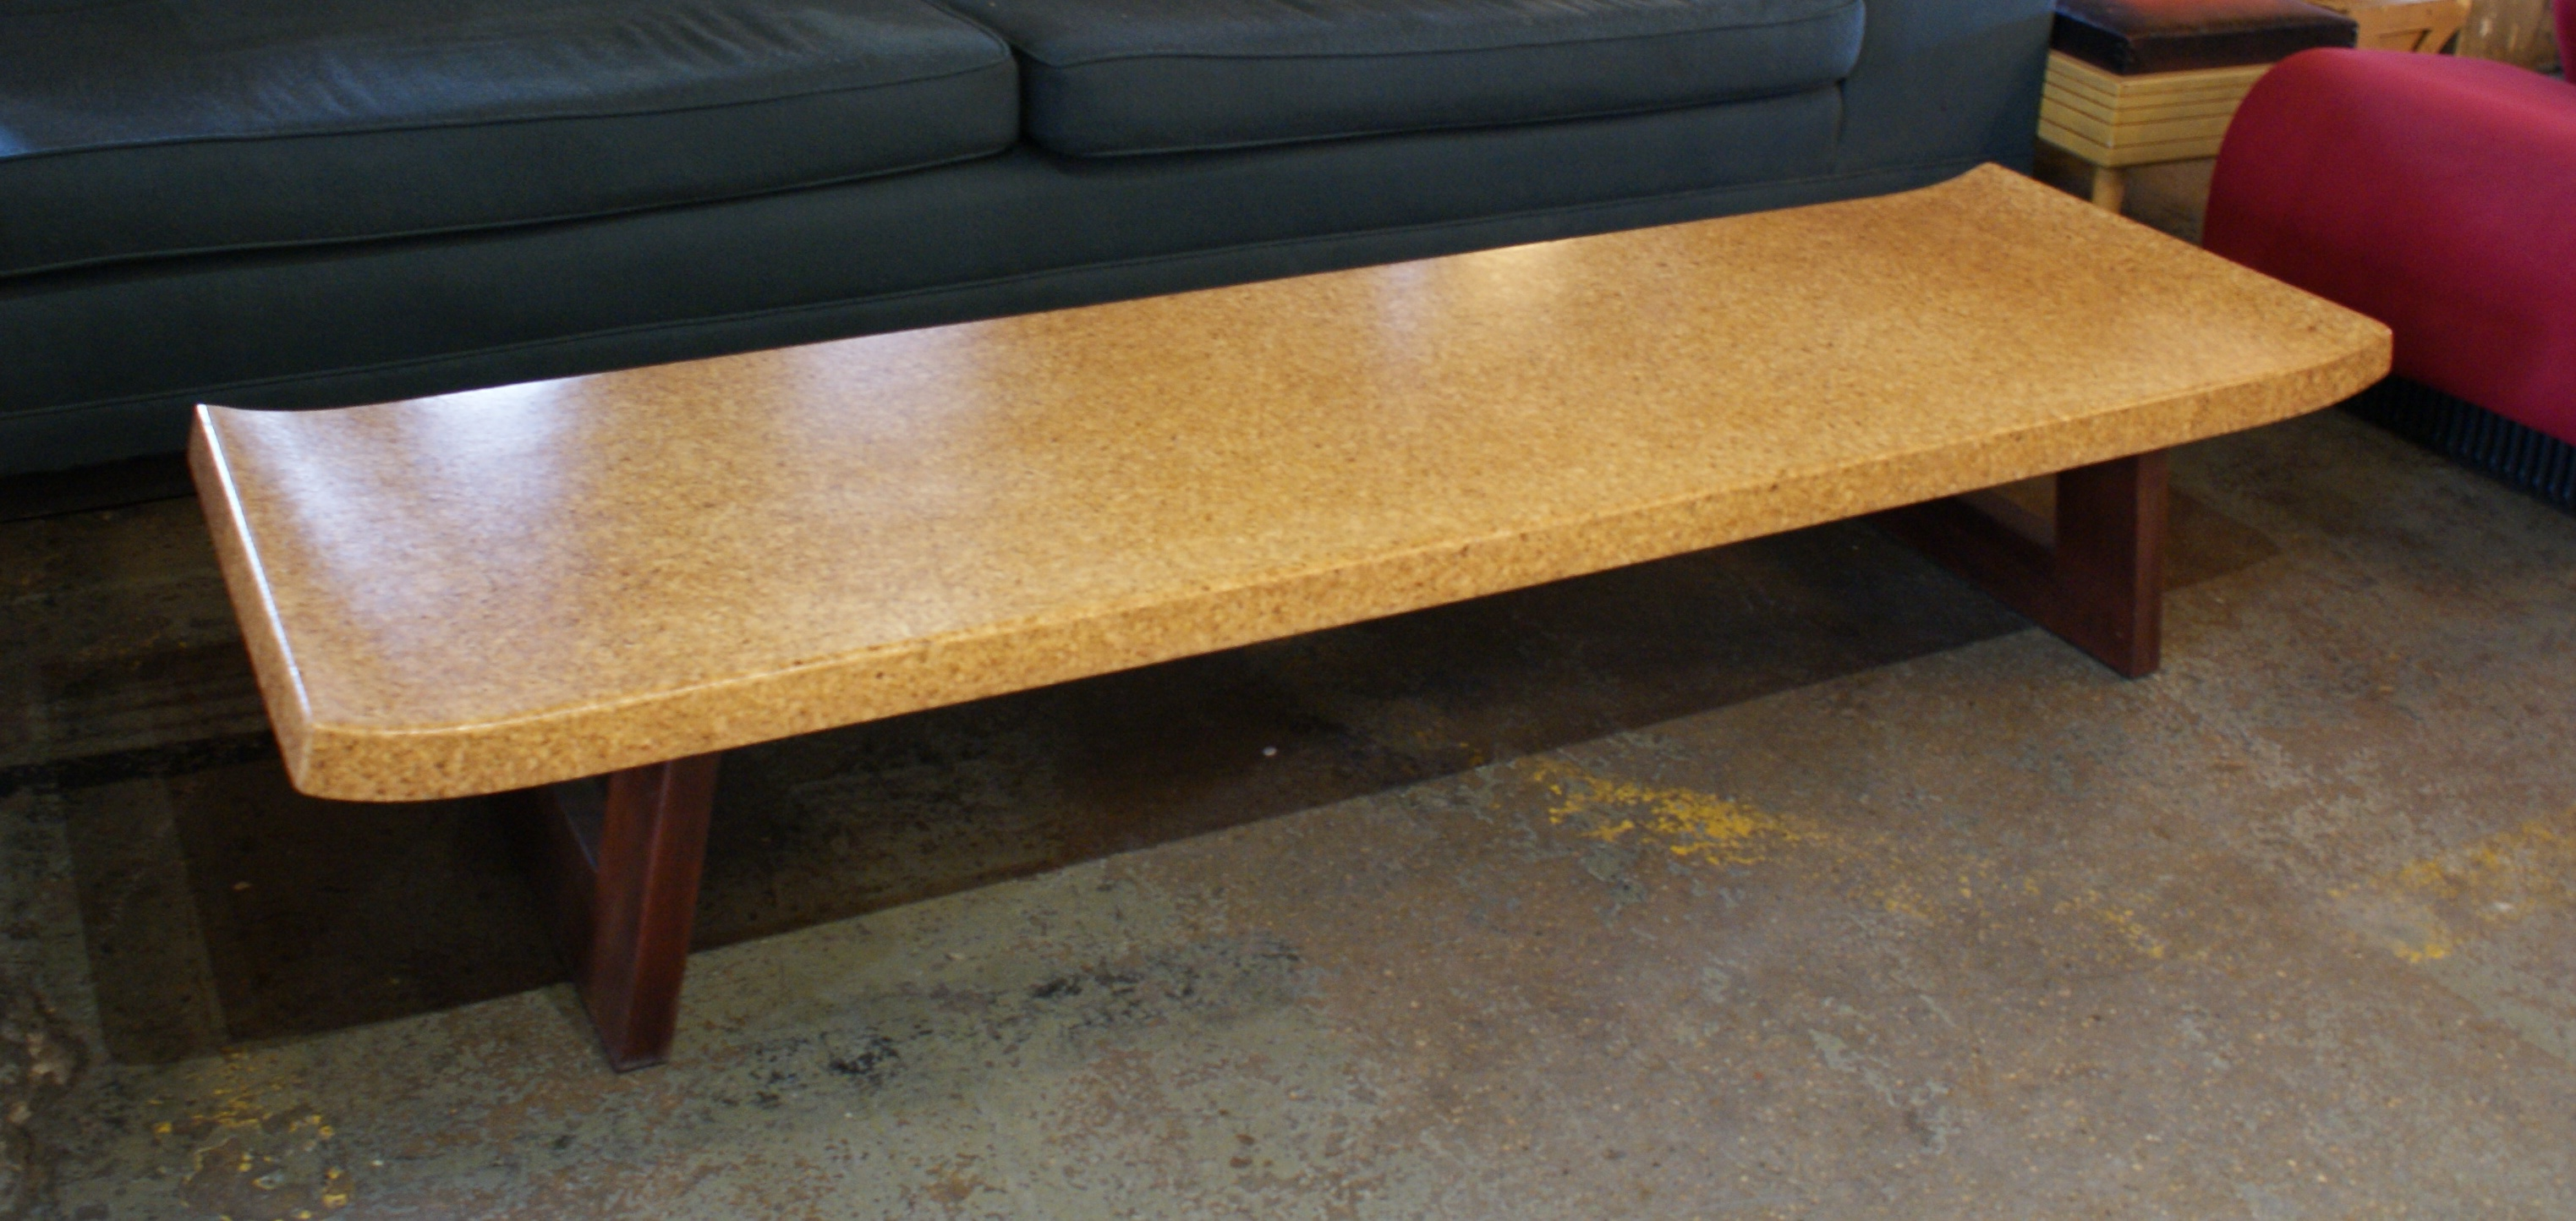 Refinished cork top coffee table by paul frankl salvage one geotapseo Gallery